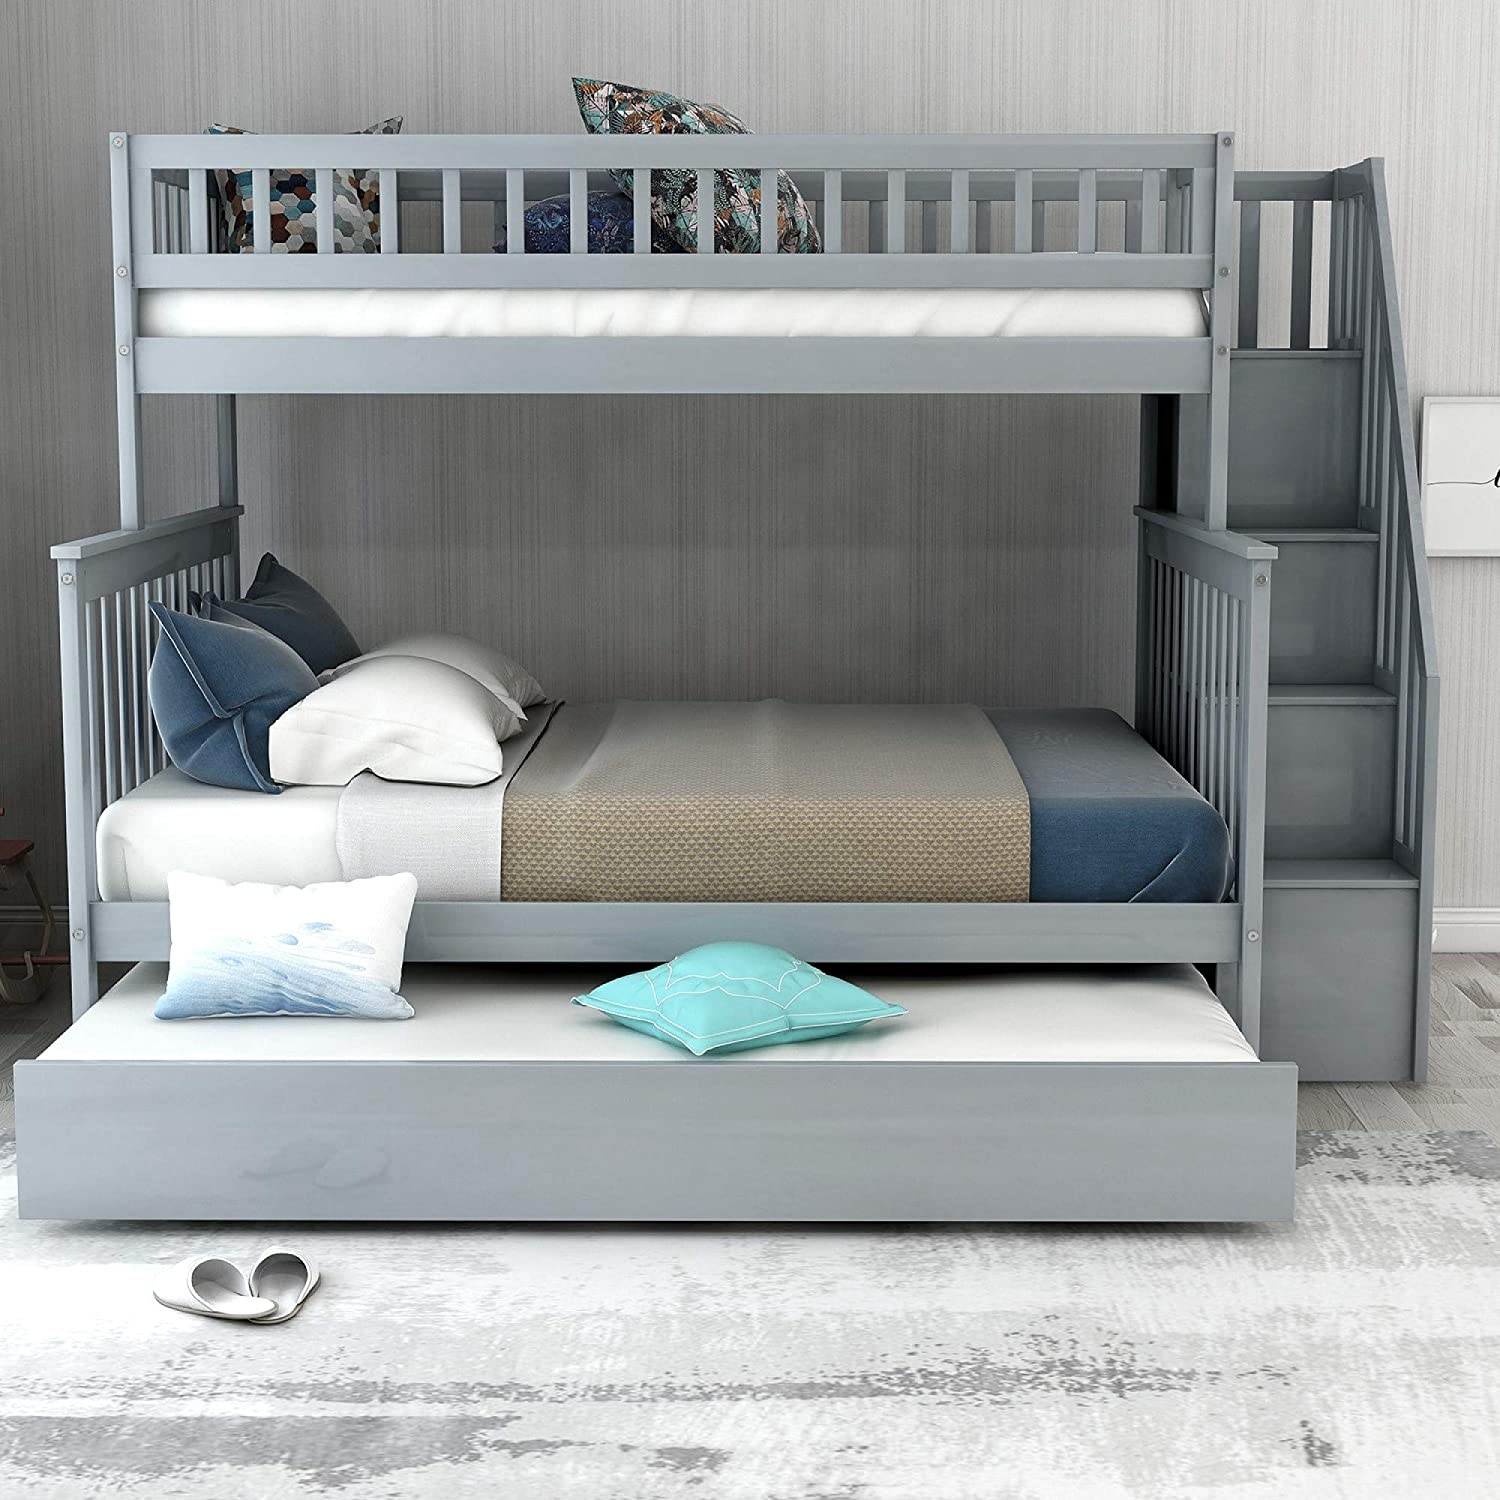 Bunk Bed With Trundle And Stairs Cheaper Than Retail Price Buy Clothing Accessories And Lifestyle Products For Women Men